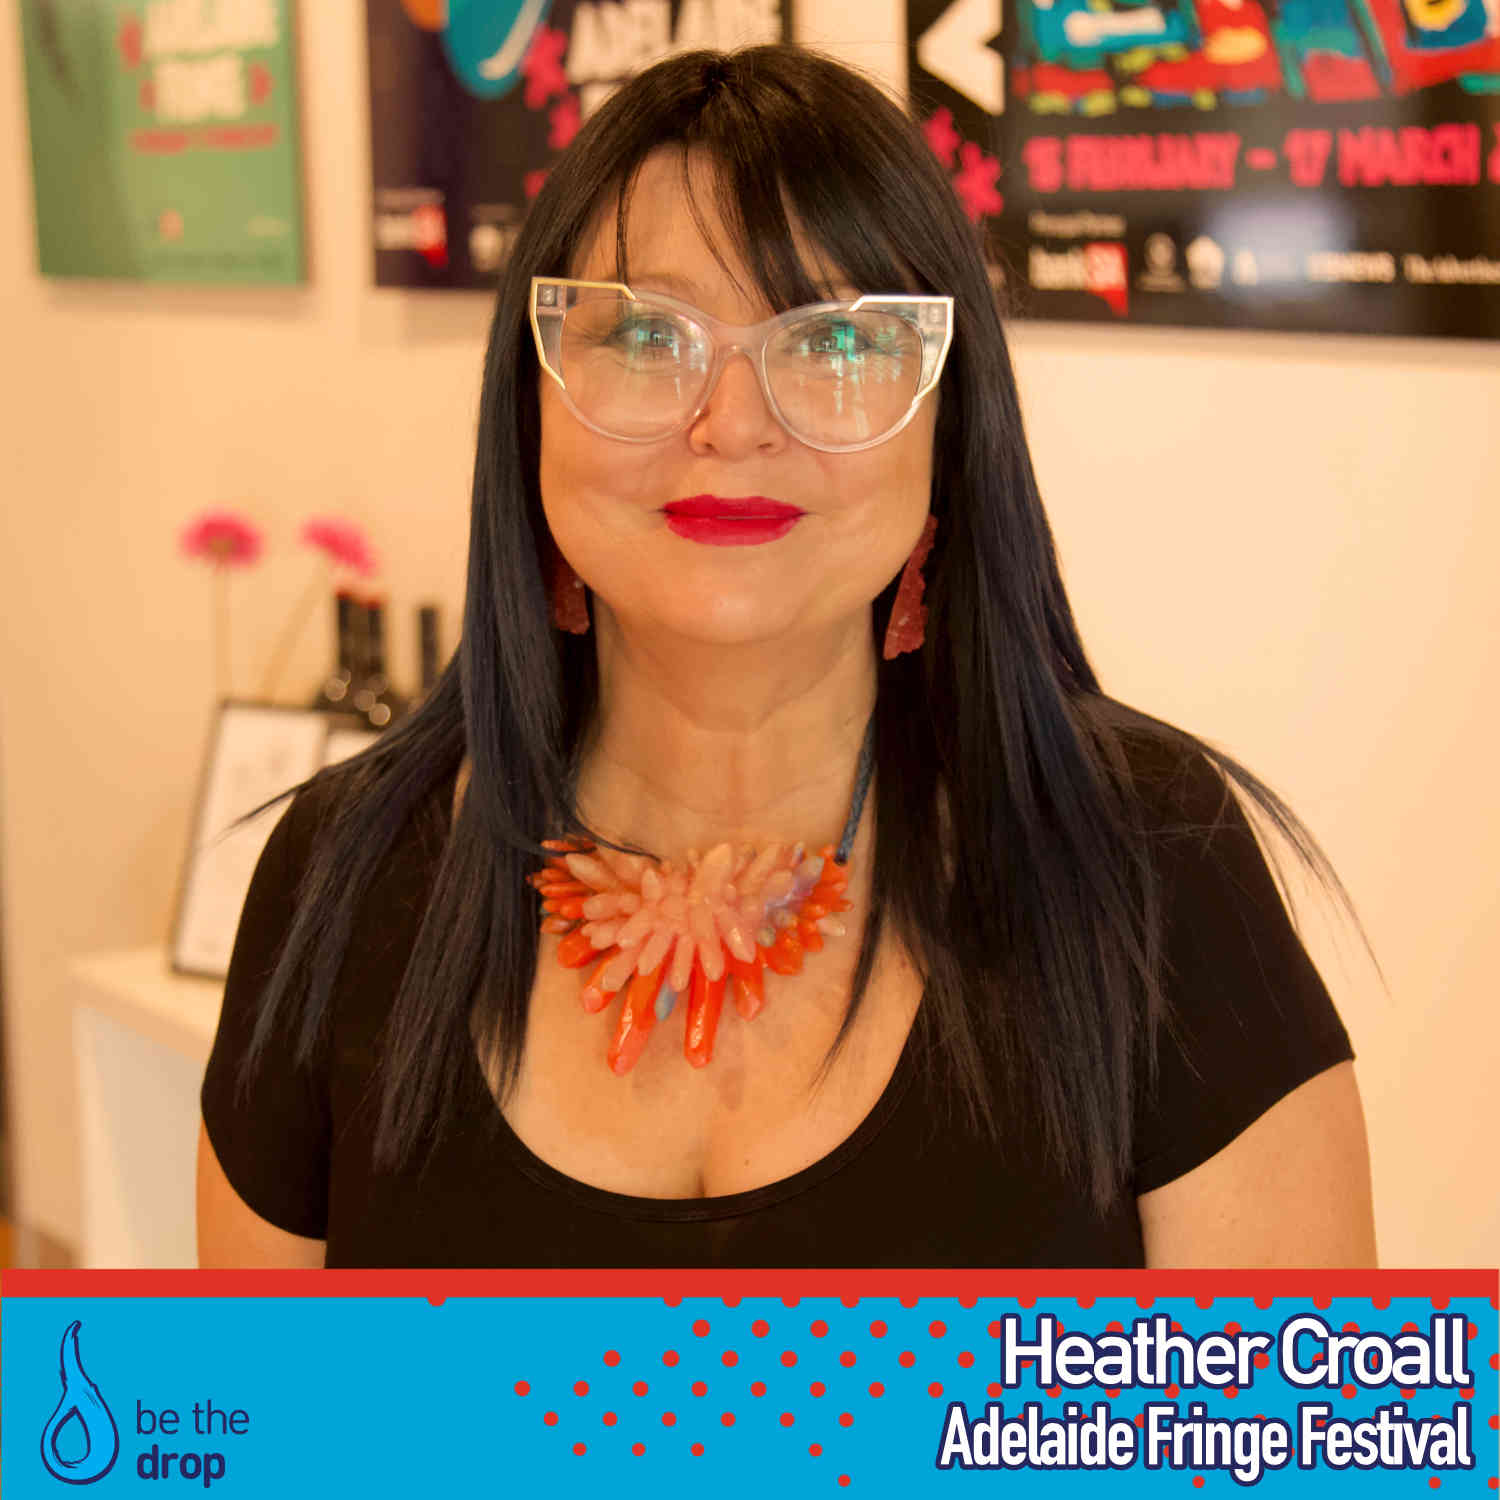 Adelaide Fringe – Behind The Scenes With Heather Croall [Podcast]